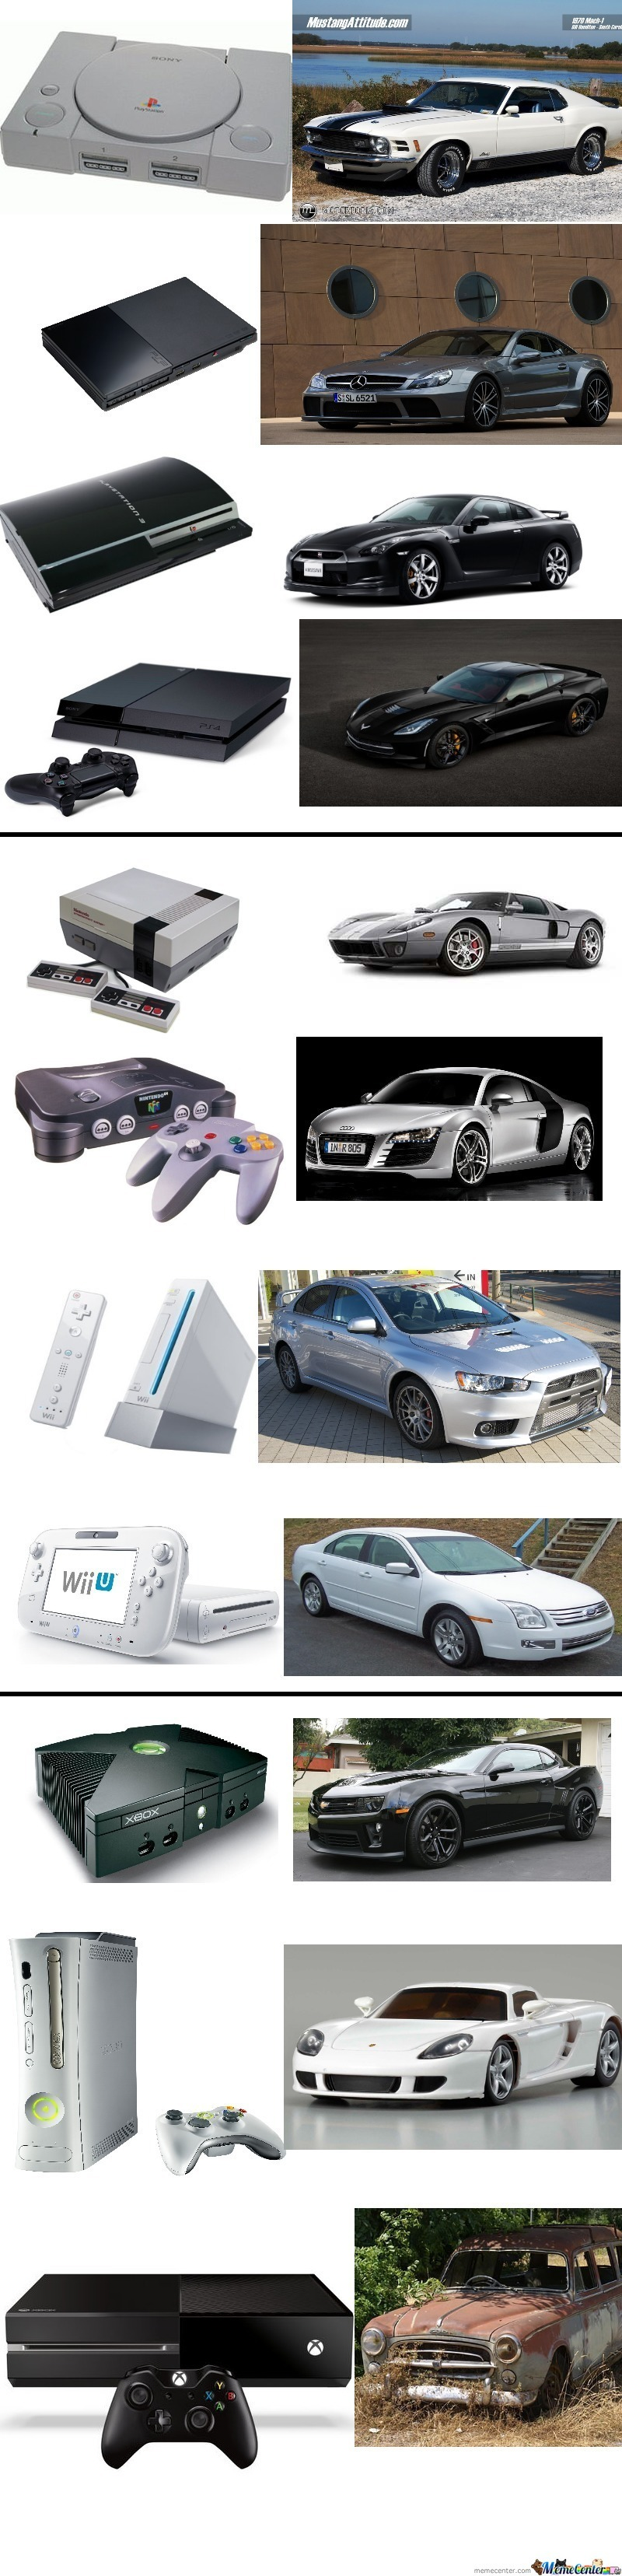 If Gaming Consoles Were Cars